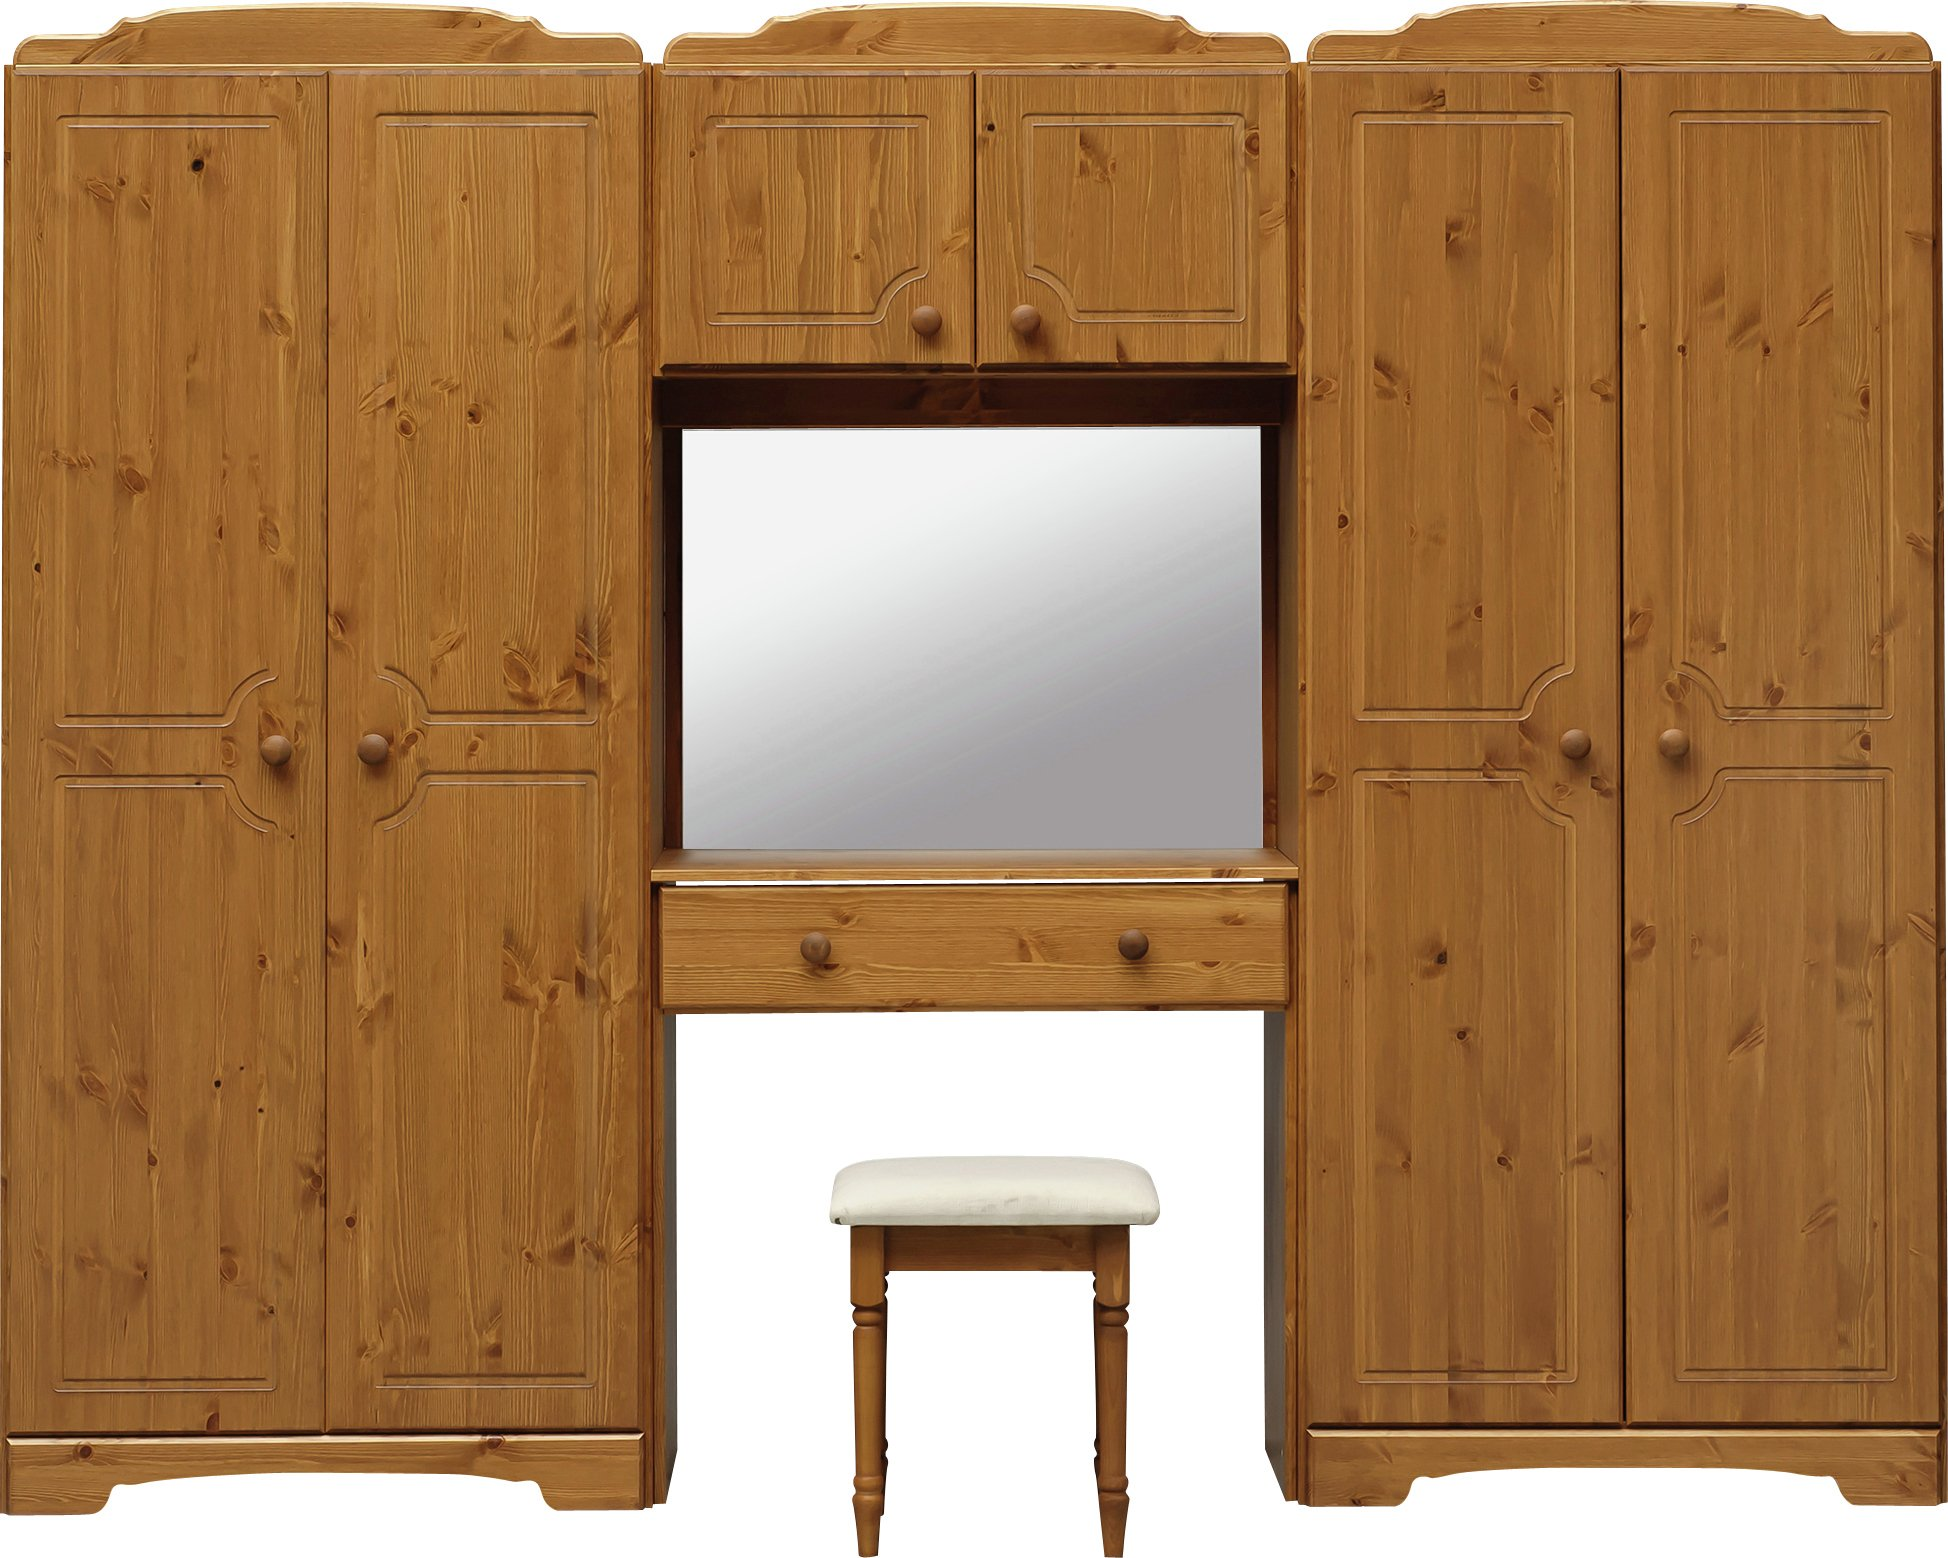 Image of HOME Nordic Wardrobe Fitment, Mirror and Stool - Pine